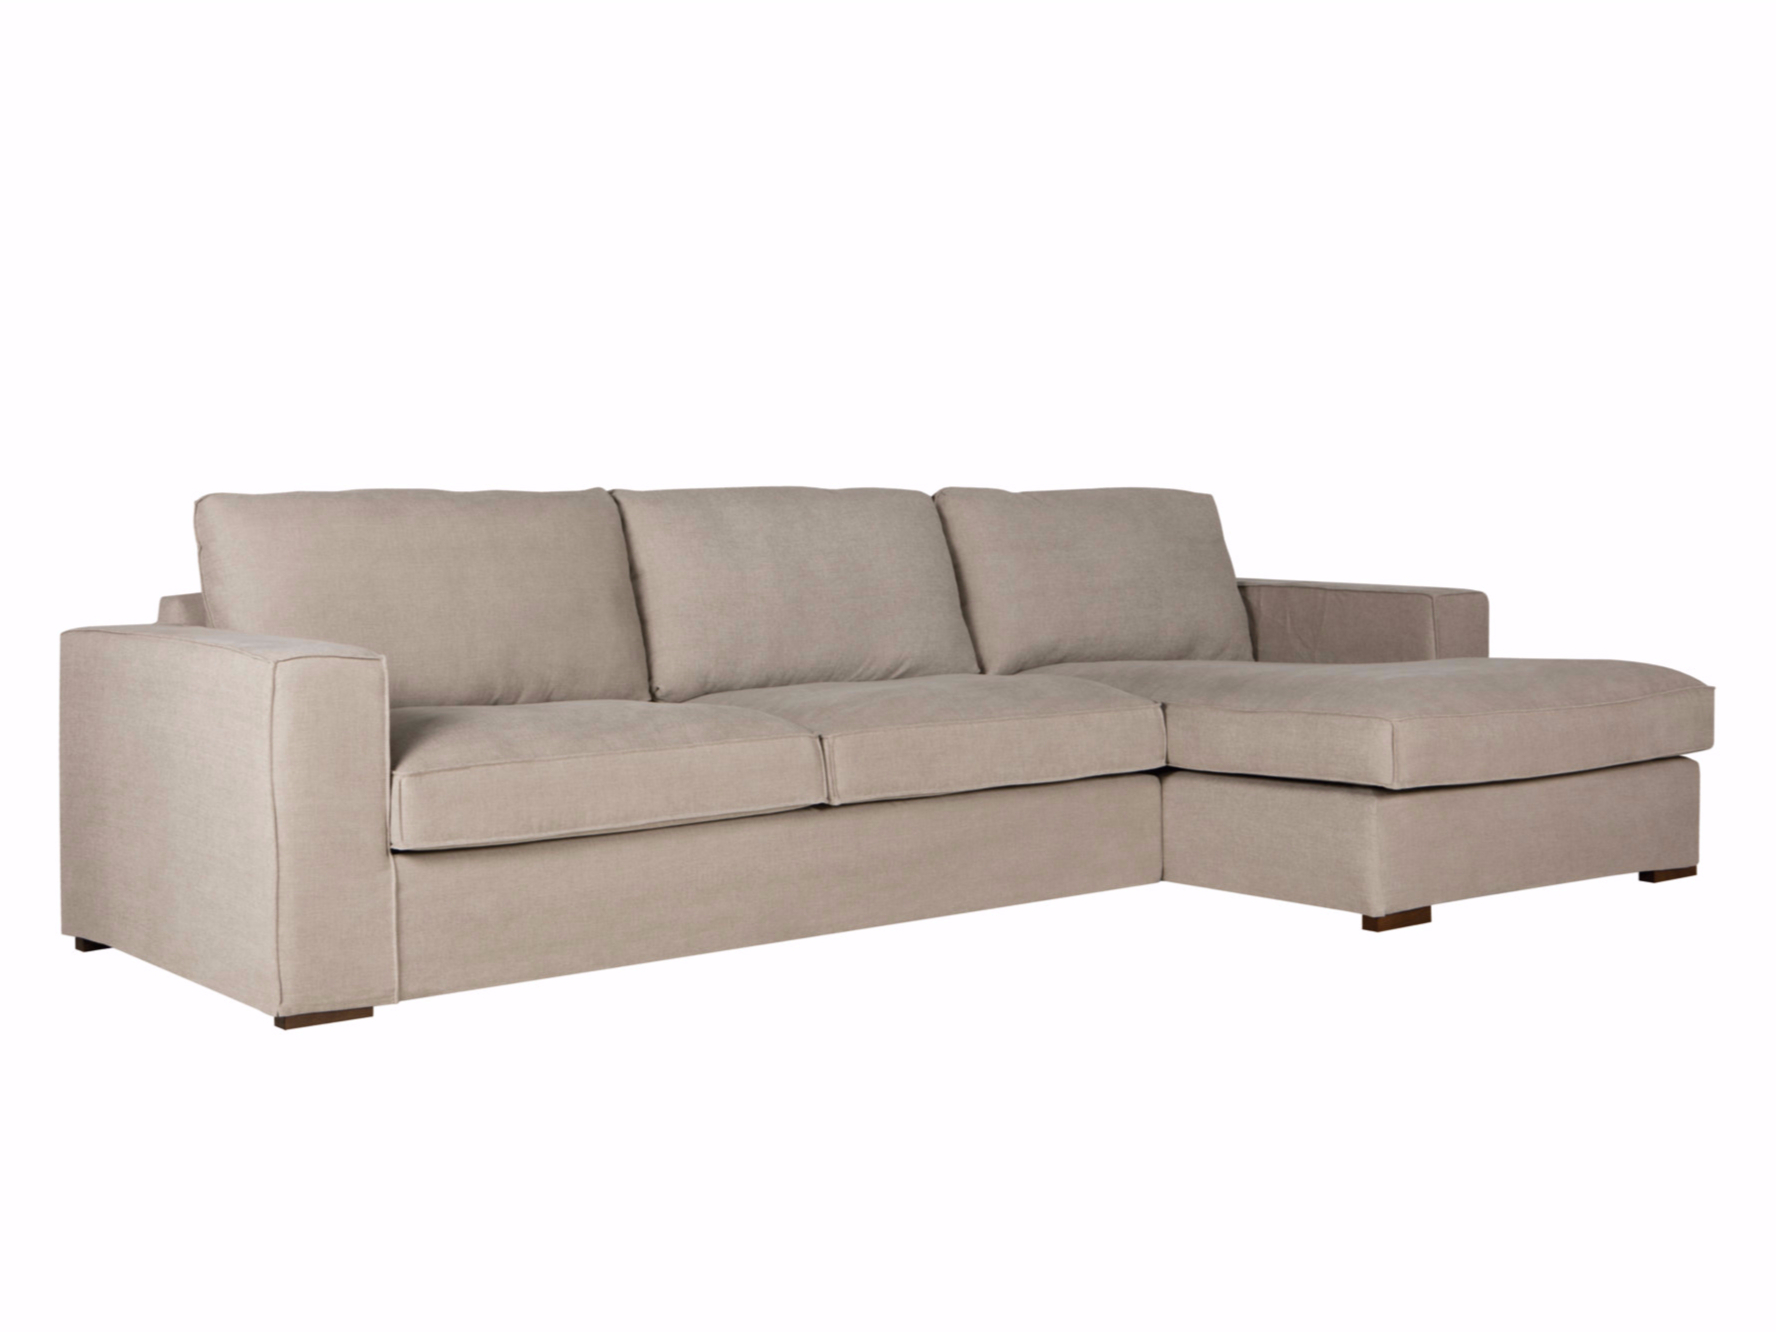 Abbe sofa with chaise longue by sits for Chaise longue sofas